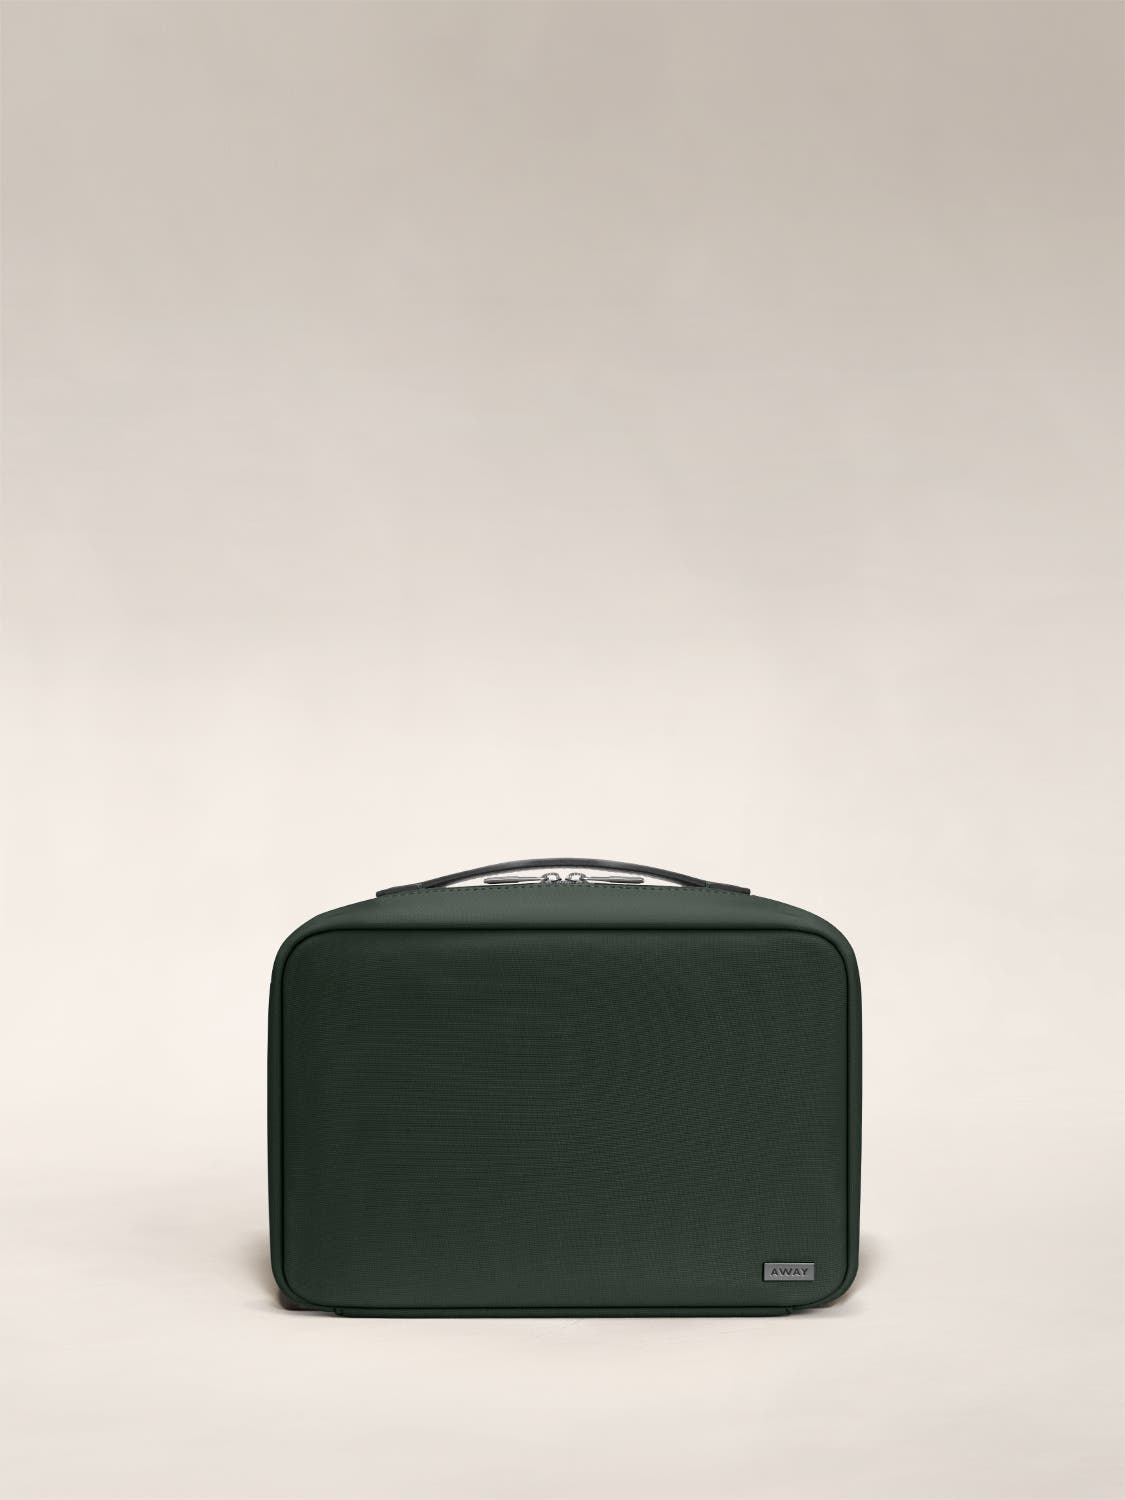 Front view of a green toiletry bag with handle on top.